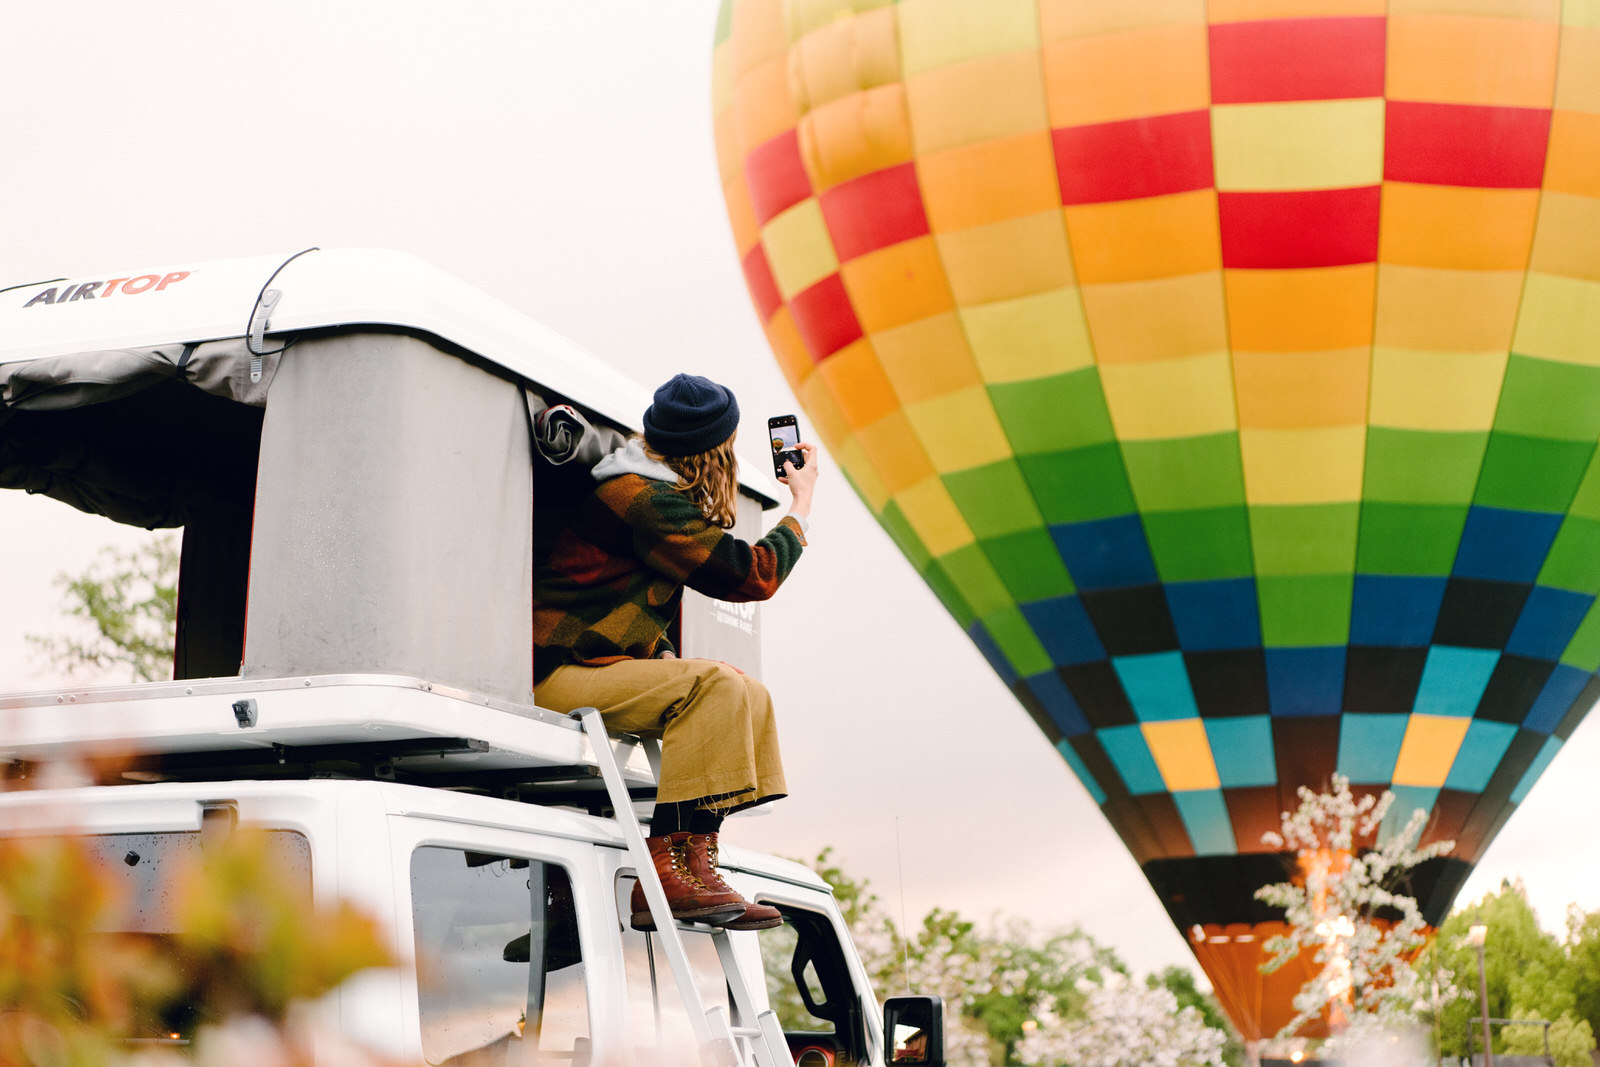 Person taking pictures of a hot air balloon out of an RV